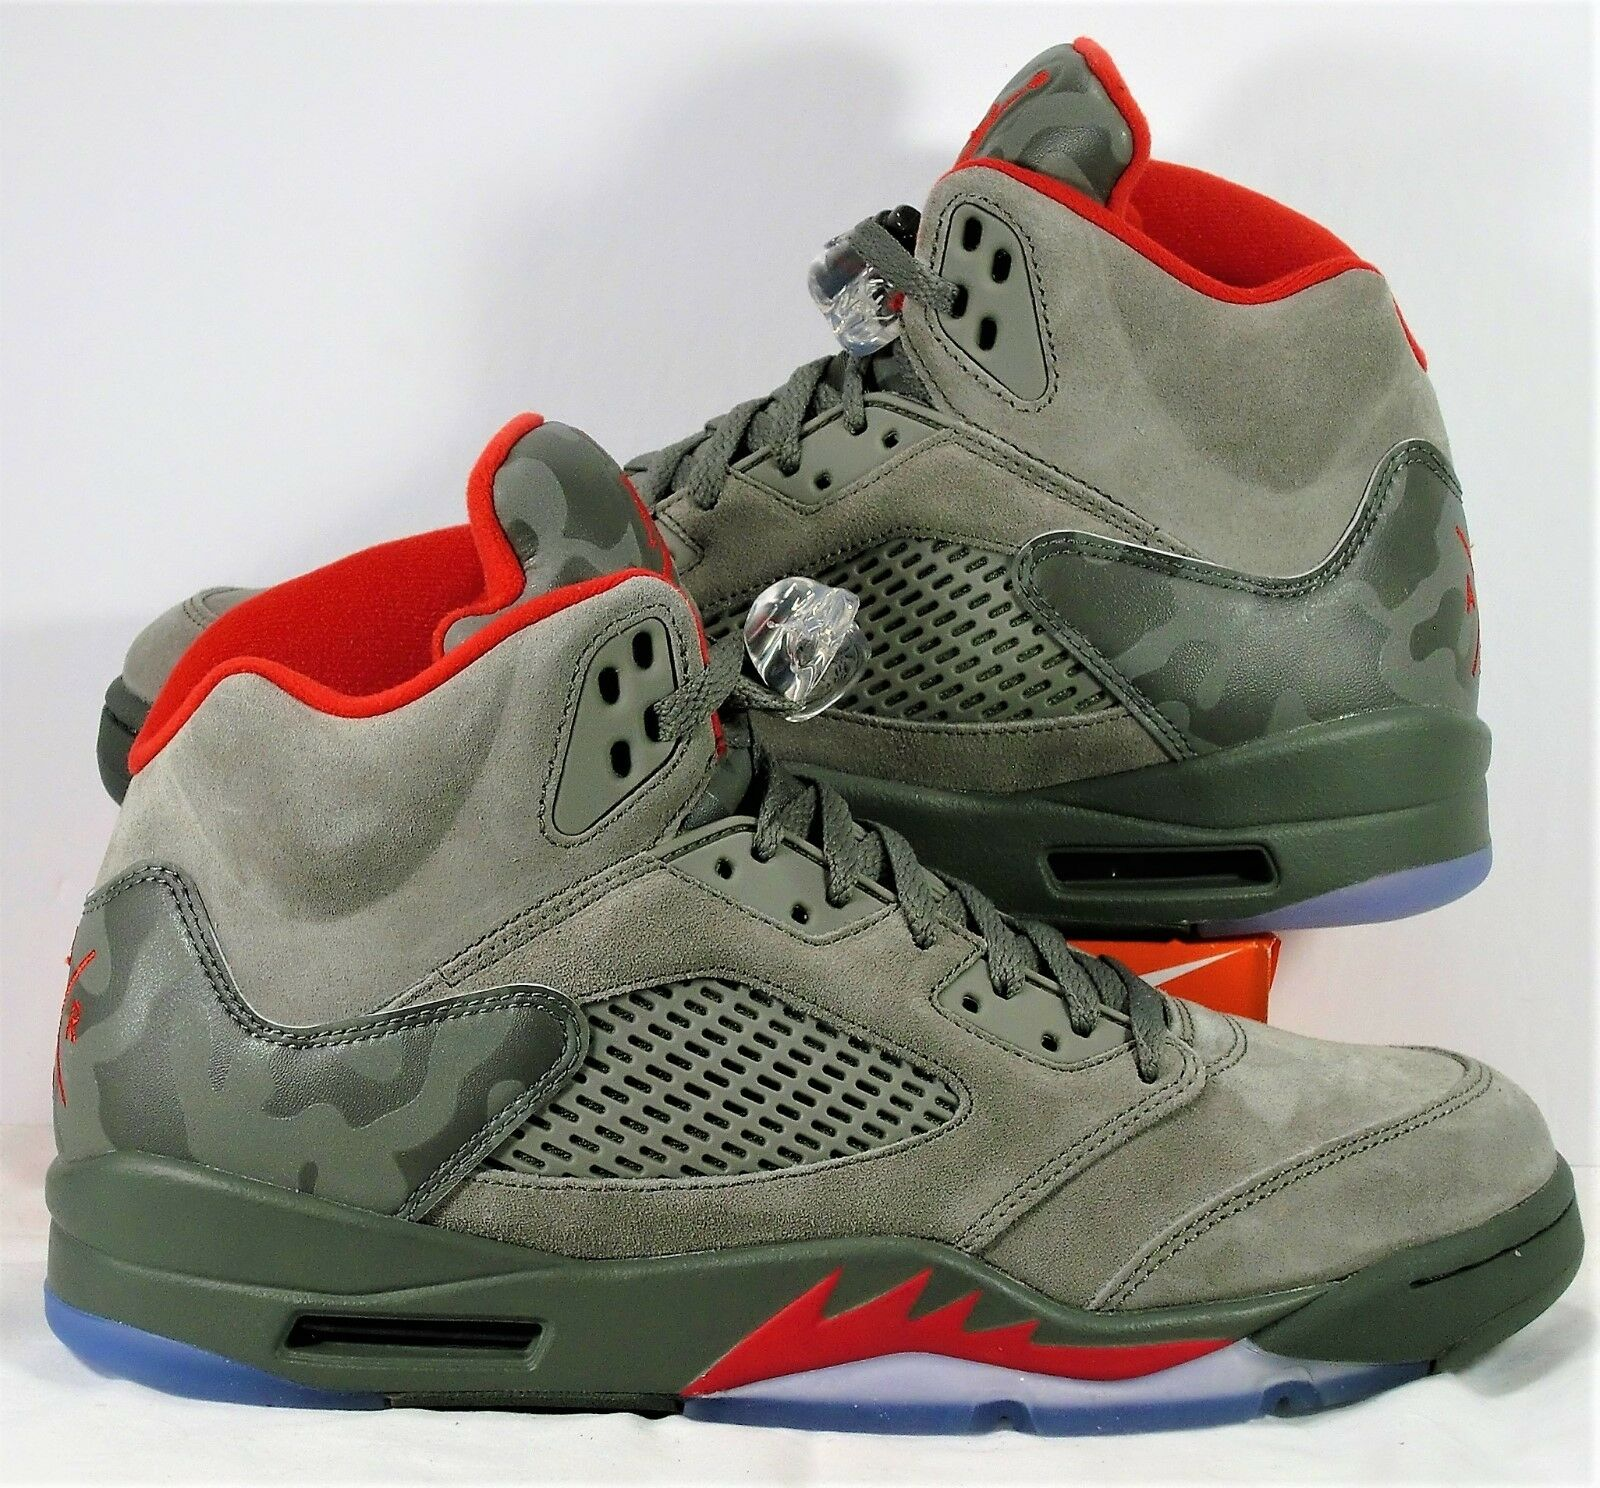 Nike Air Jordan Retro 5 V 3M Camo Camoflauge Stucco & Red Sz 10 NEW 136027 051